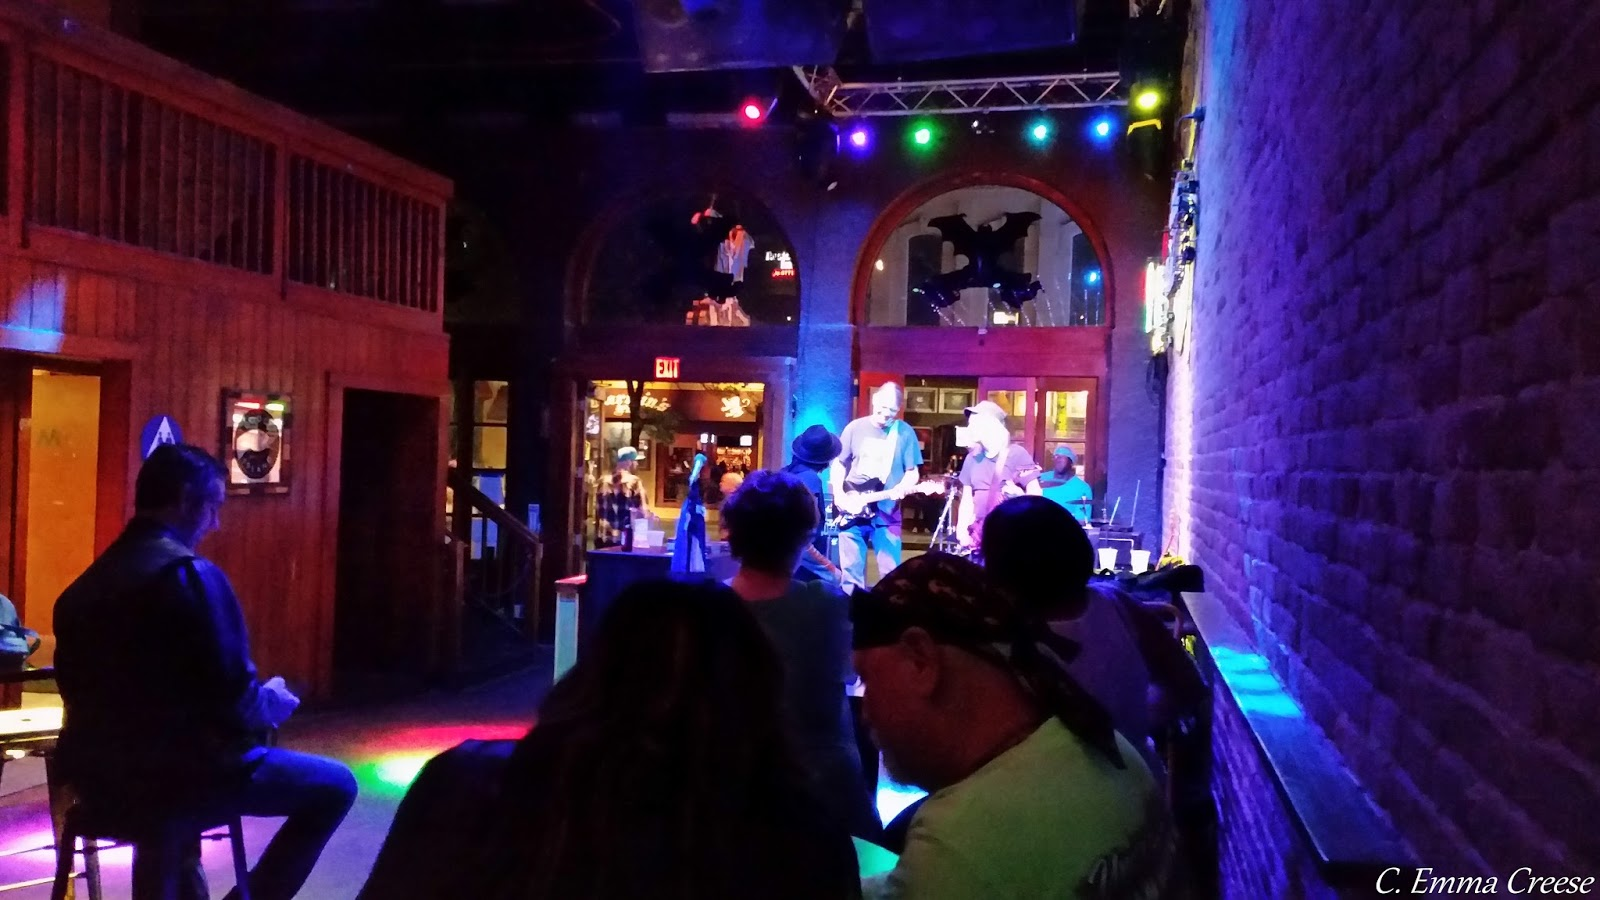 6th Street bar hopping - 9 of our favourite things to do in Austin, Texas Adventures of a London Kiwi